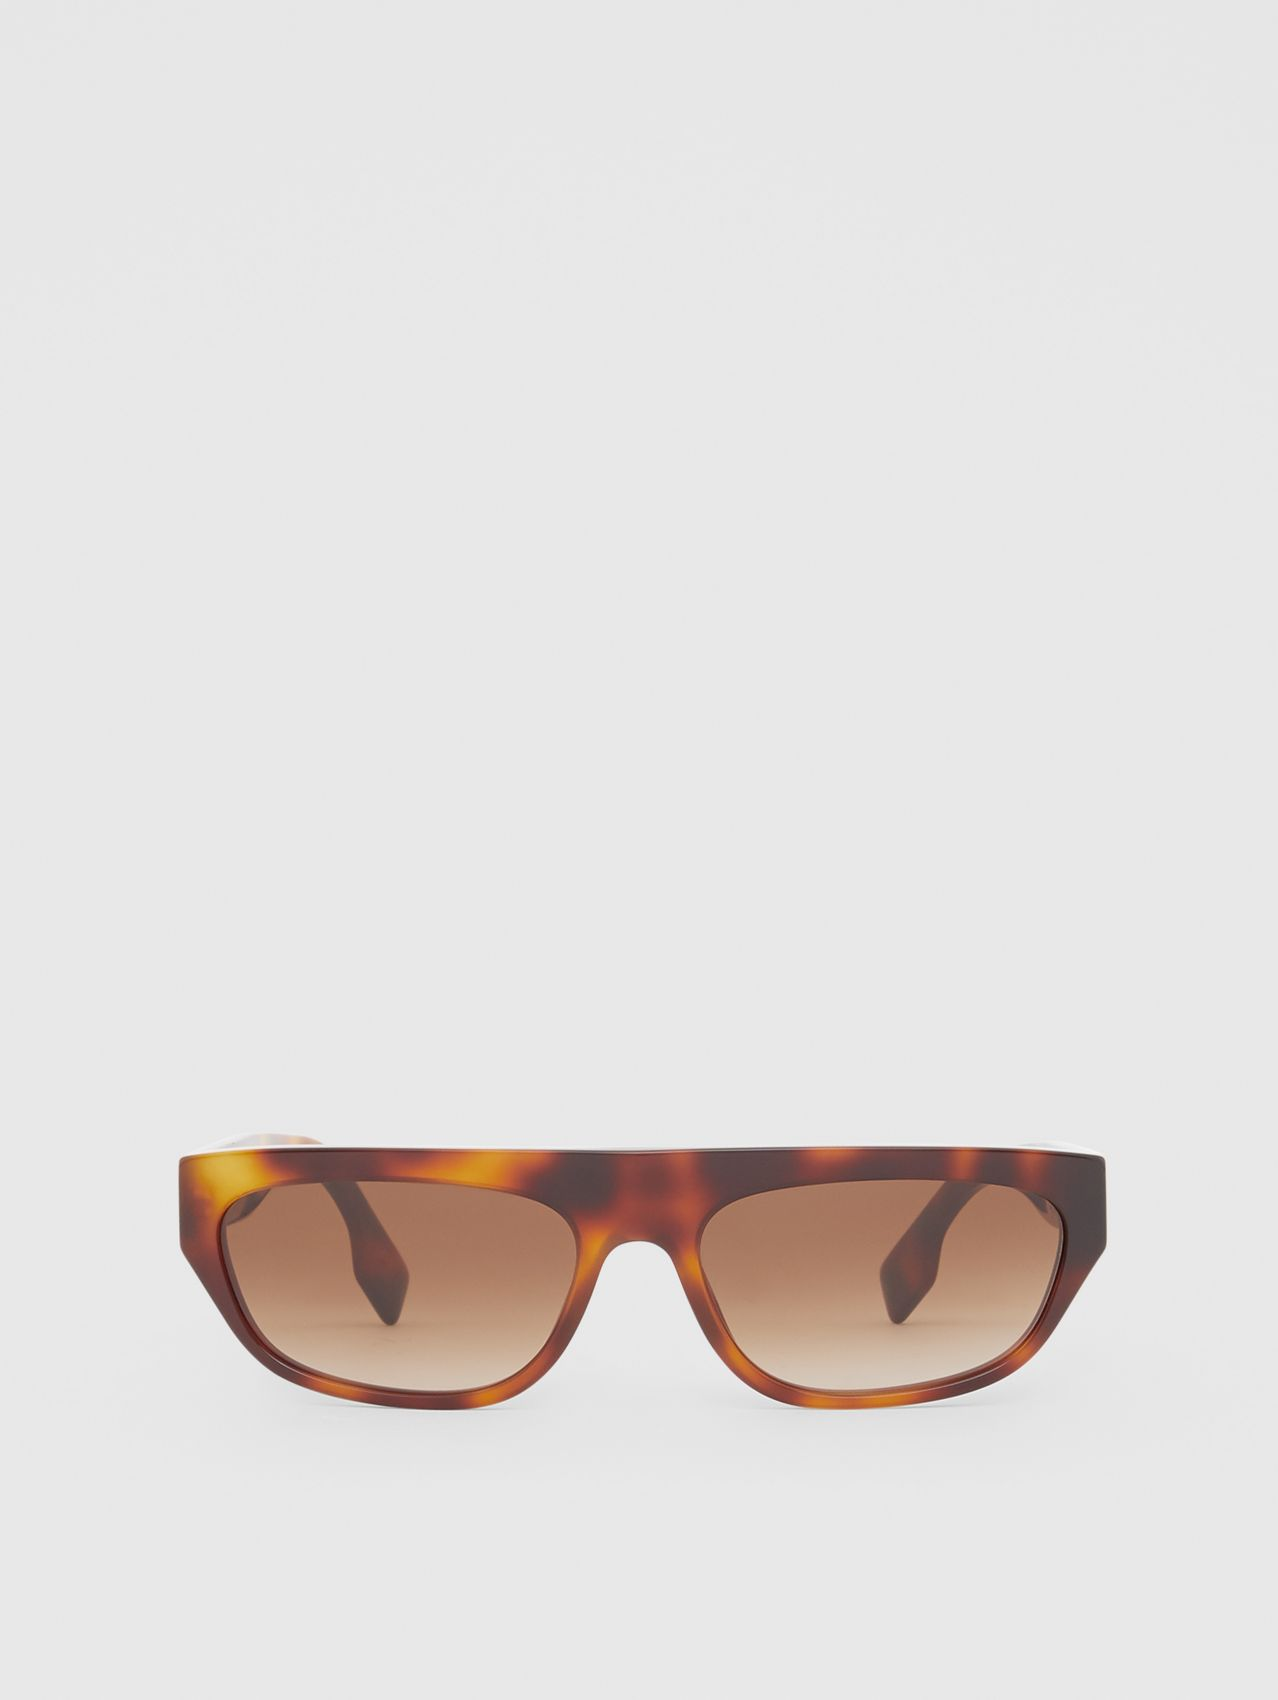 Monogram Motif Rectangular Frame Sunglasses in Amber Tortoiseshell